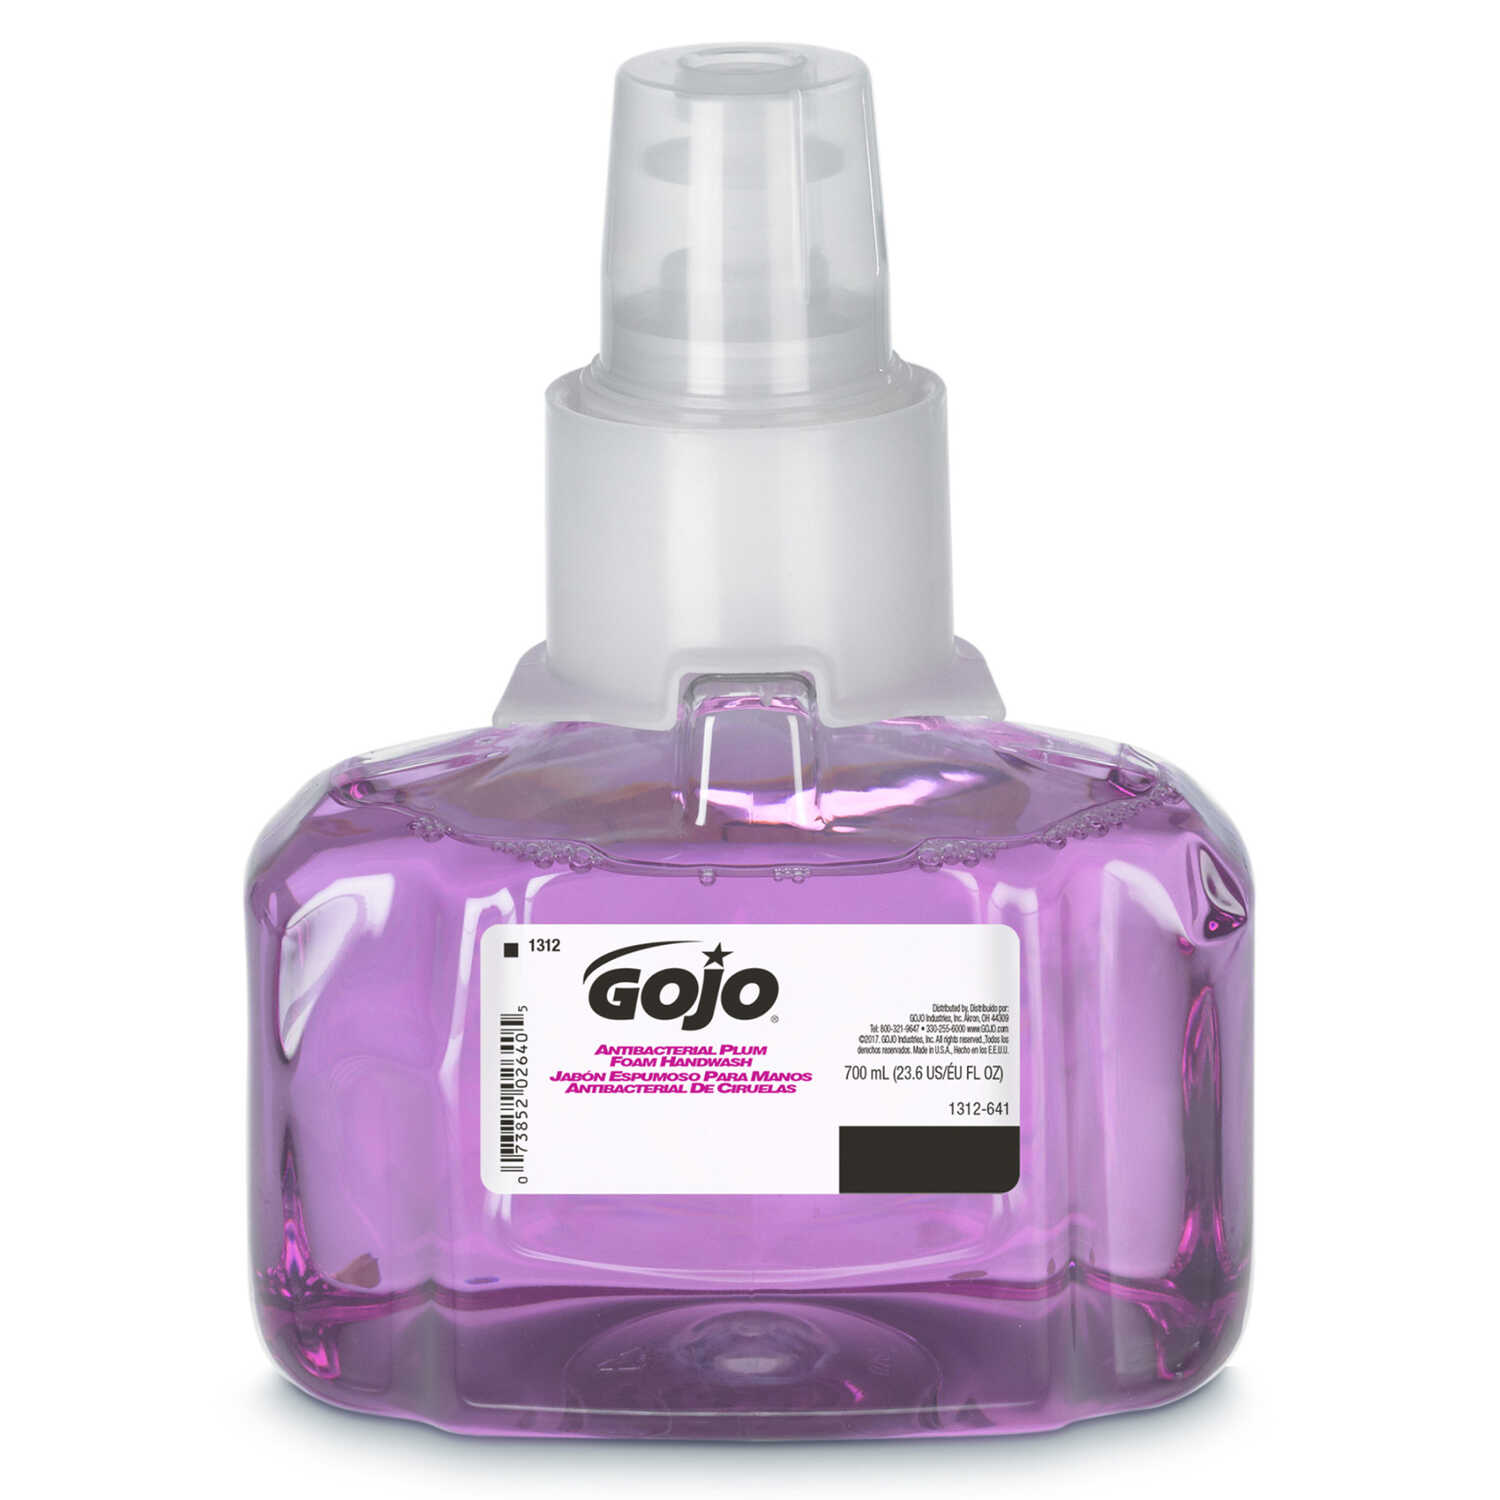 Gojo  Plum Scent Antibacterial Hand Soap Dispenser Refill  700 ml